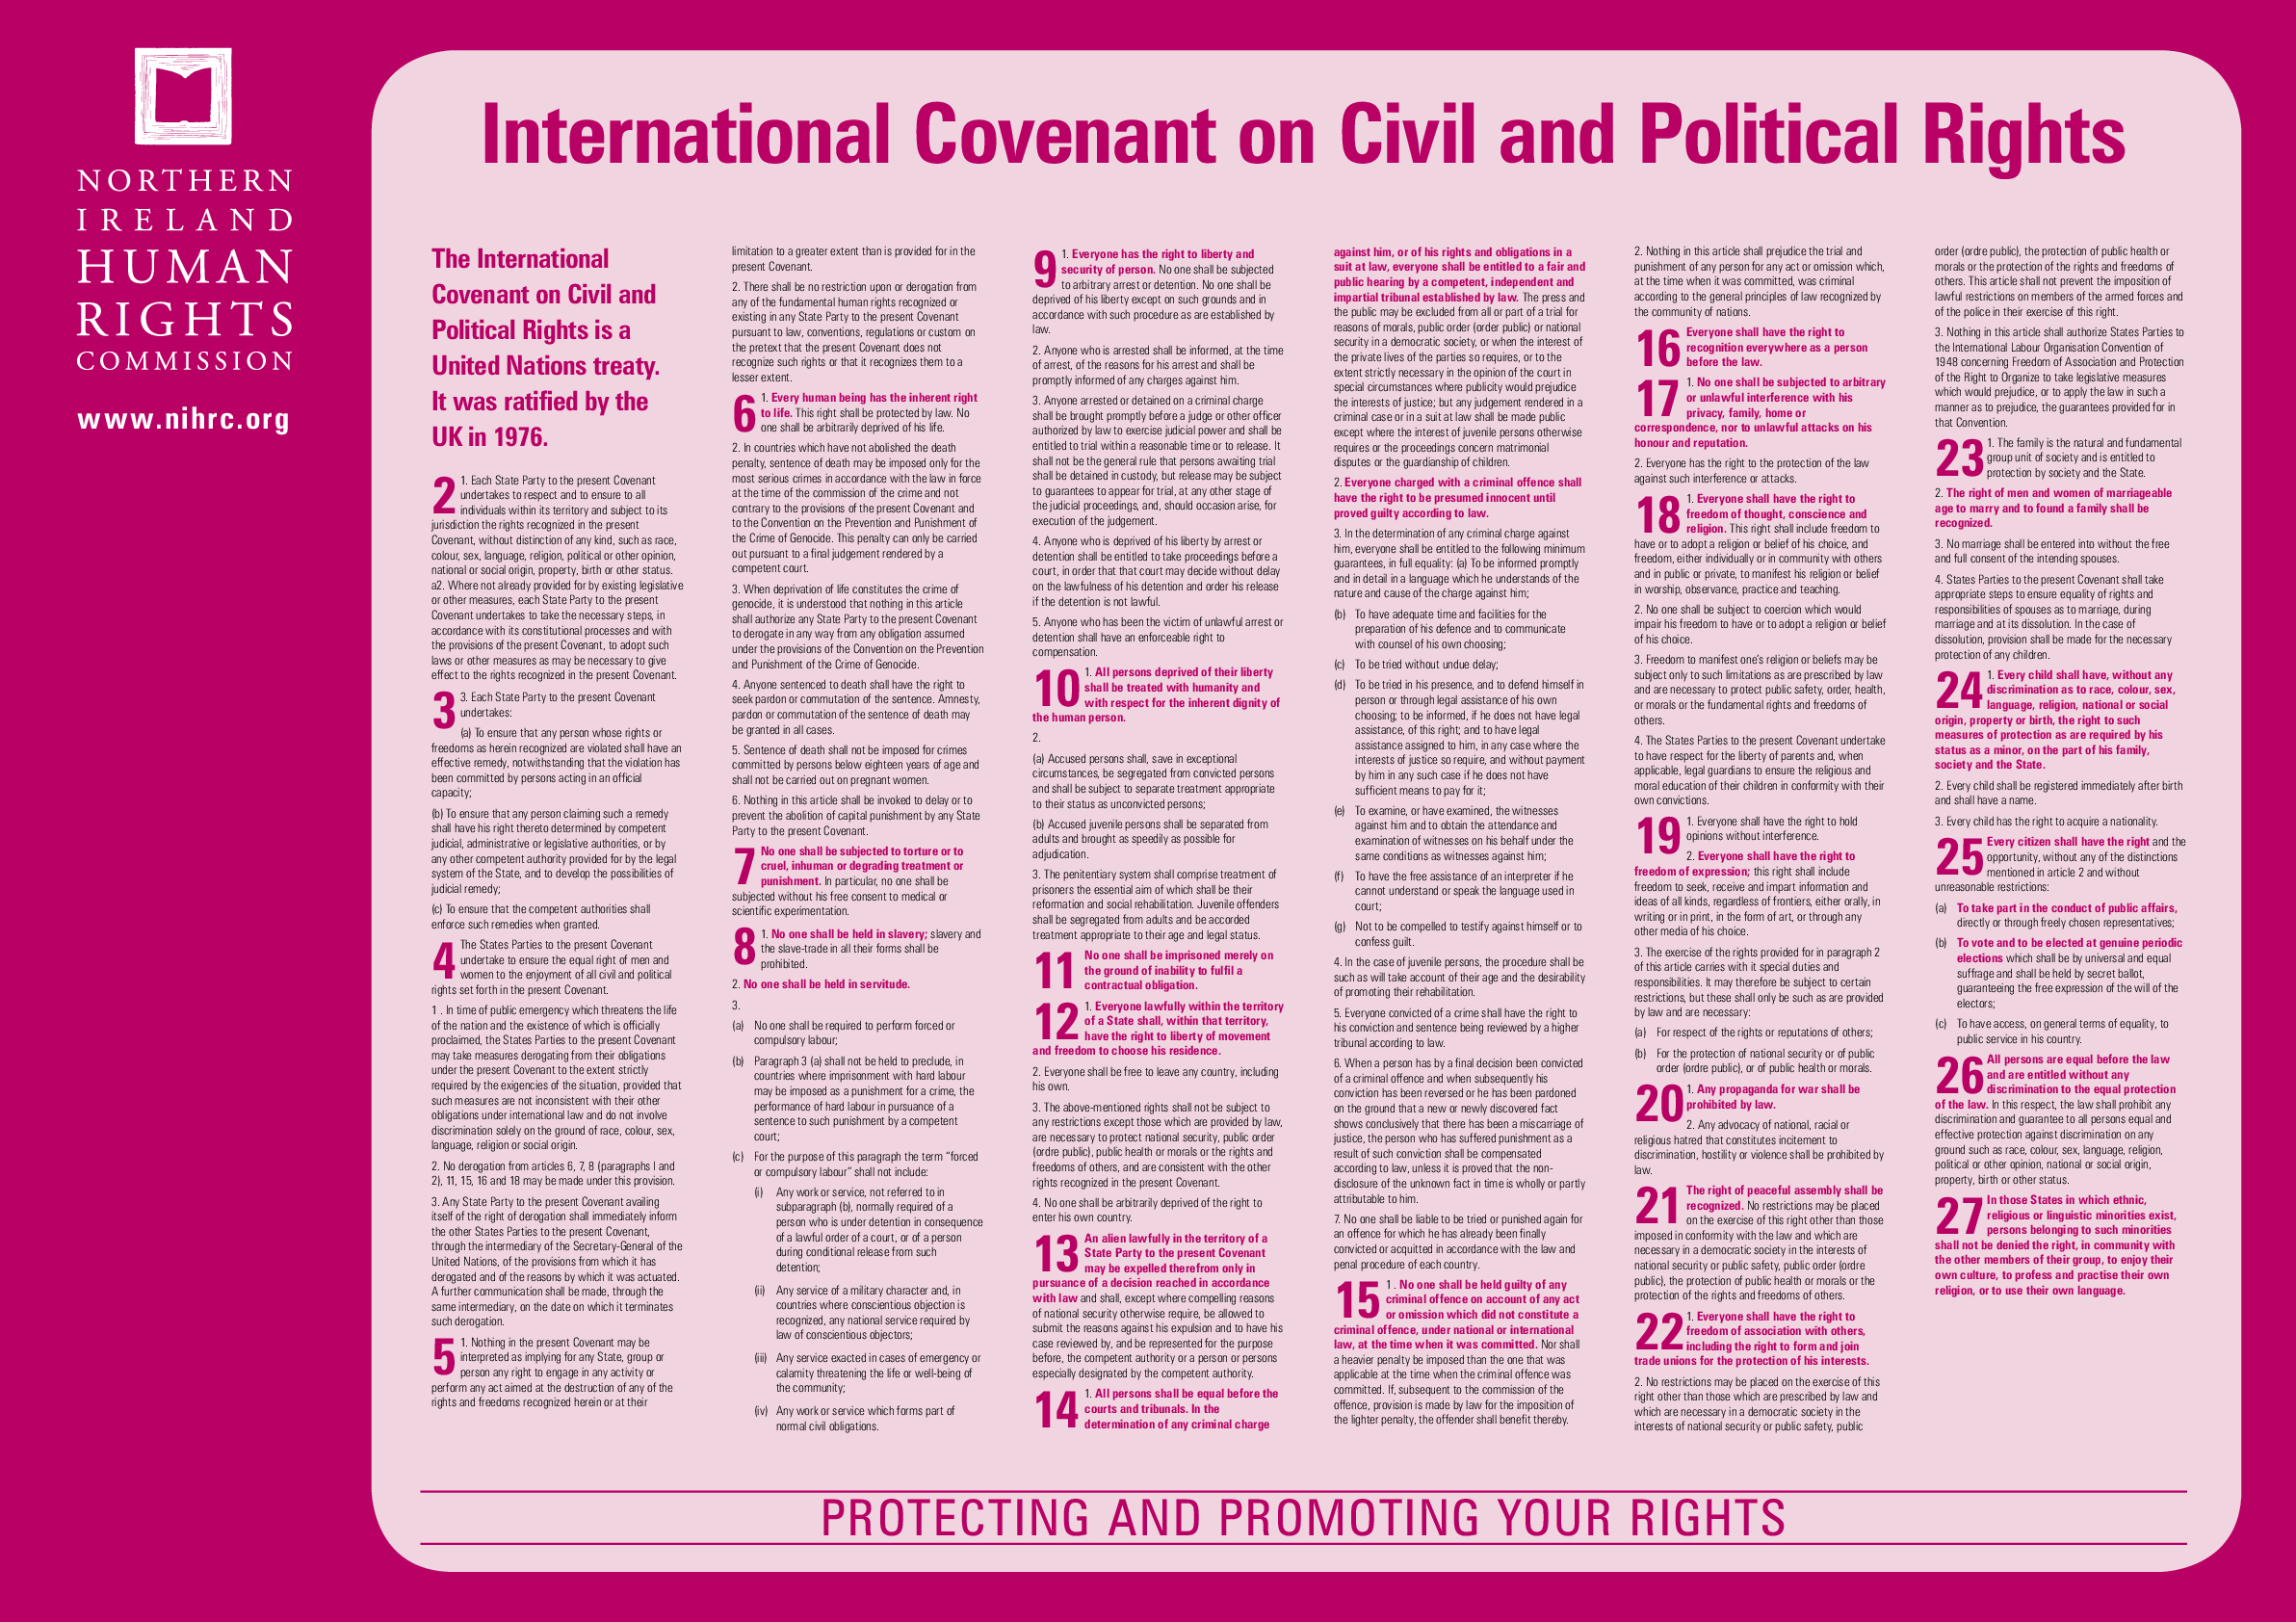 International Covenant on Civil and Political Rights (ICCPR) Poster - resource 1